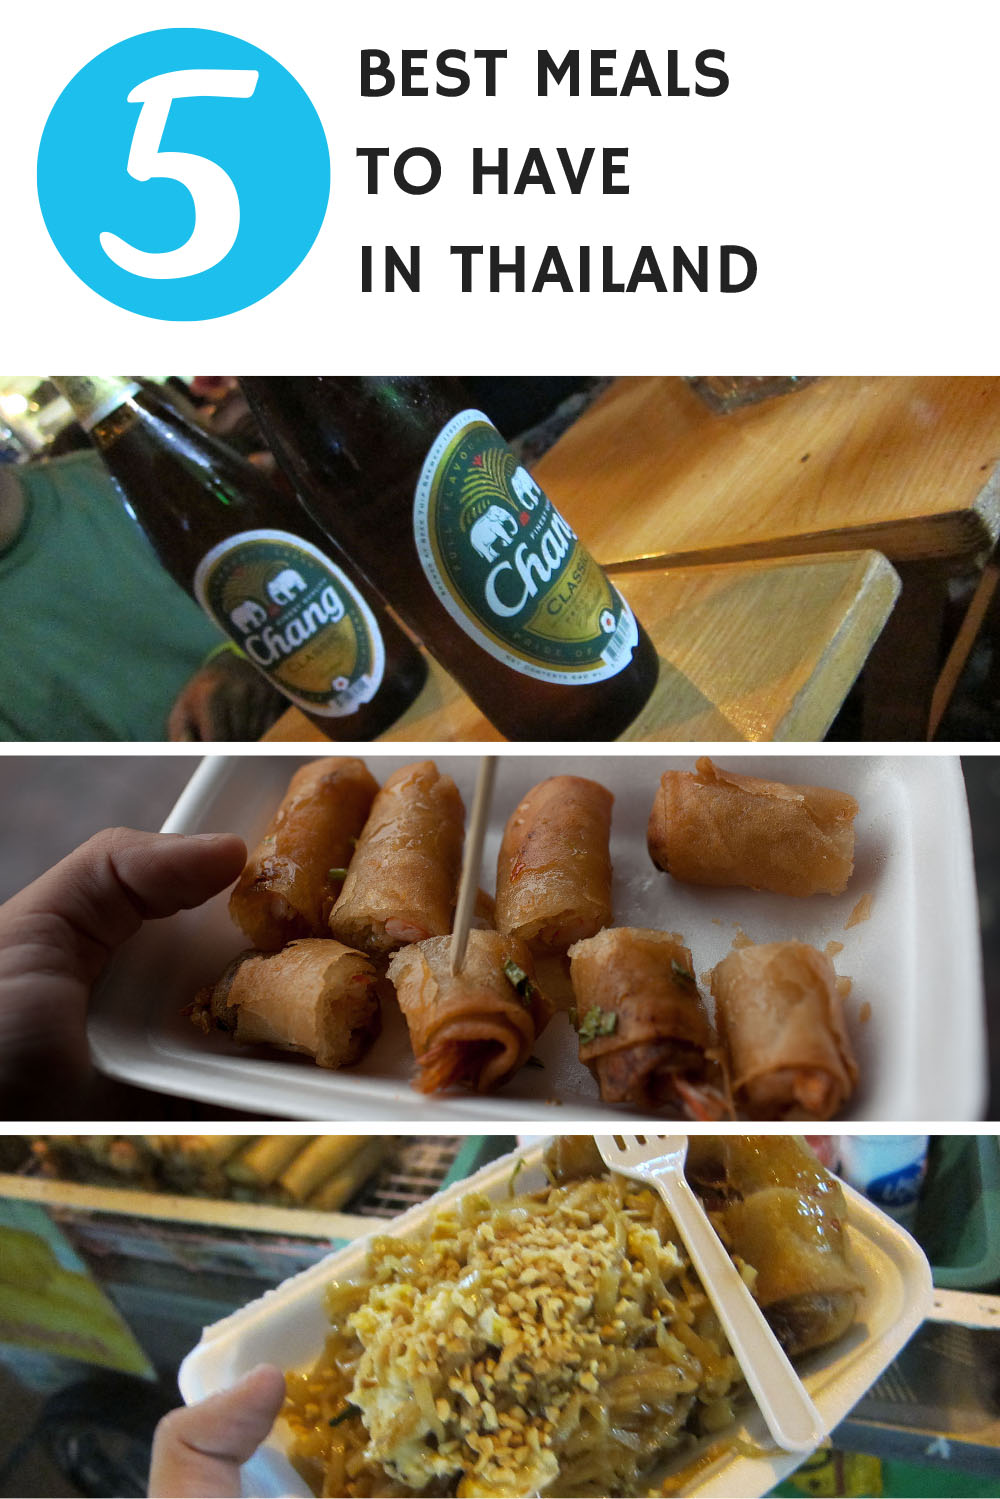 5 Best Meals to Have in Thailand